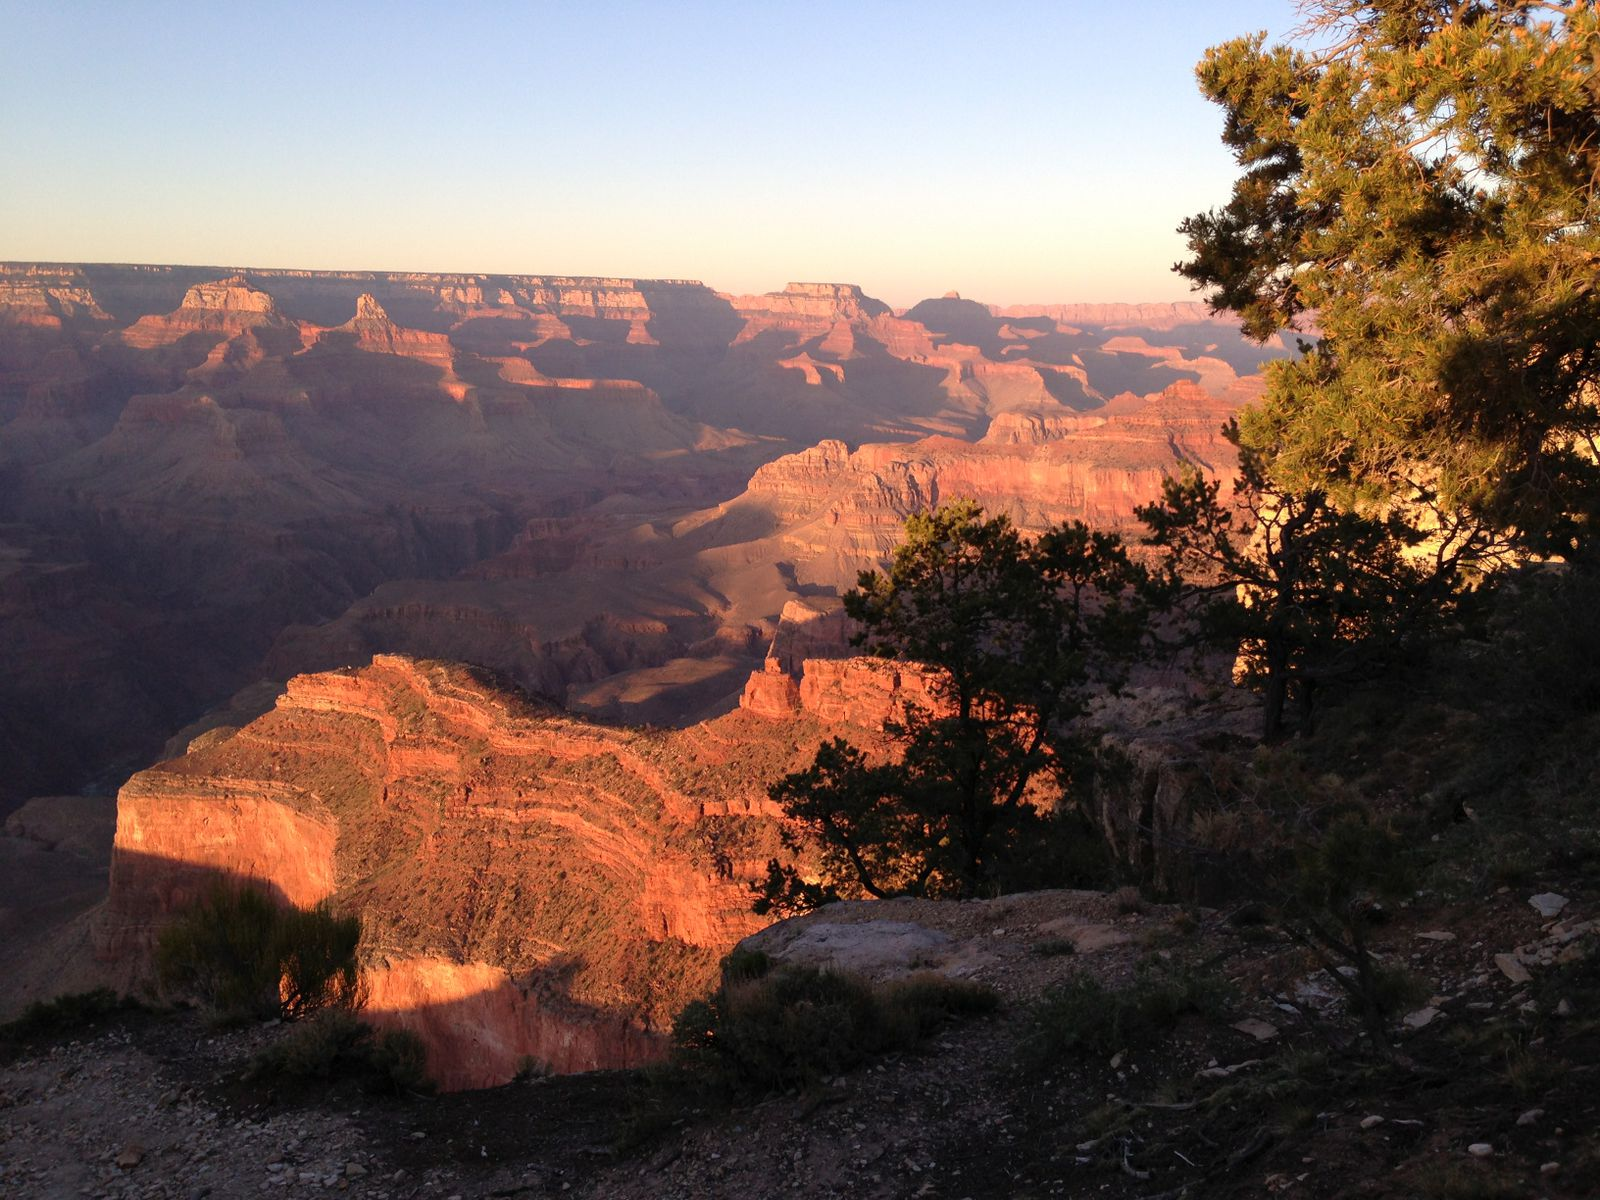 J-2 : KINGMAN - GRAND CANYON NP